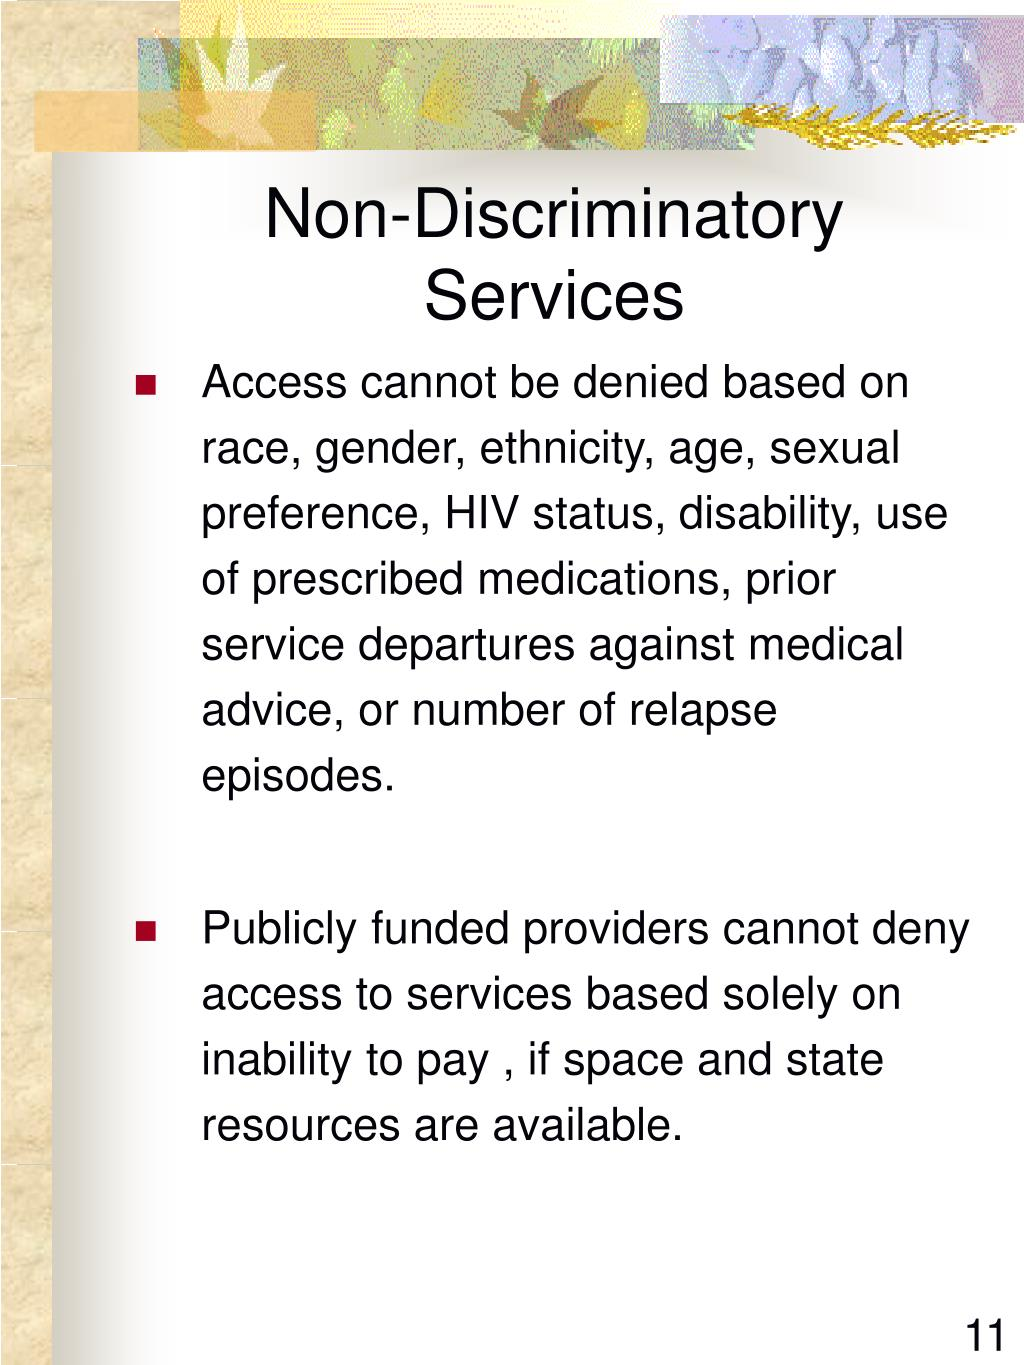 Non-Discriminatory Services